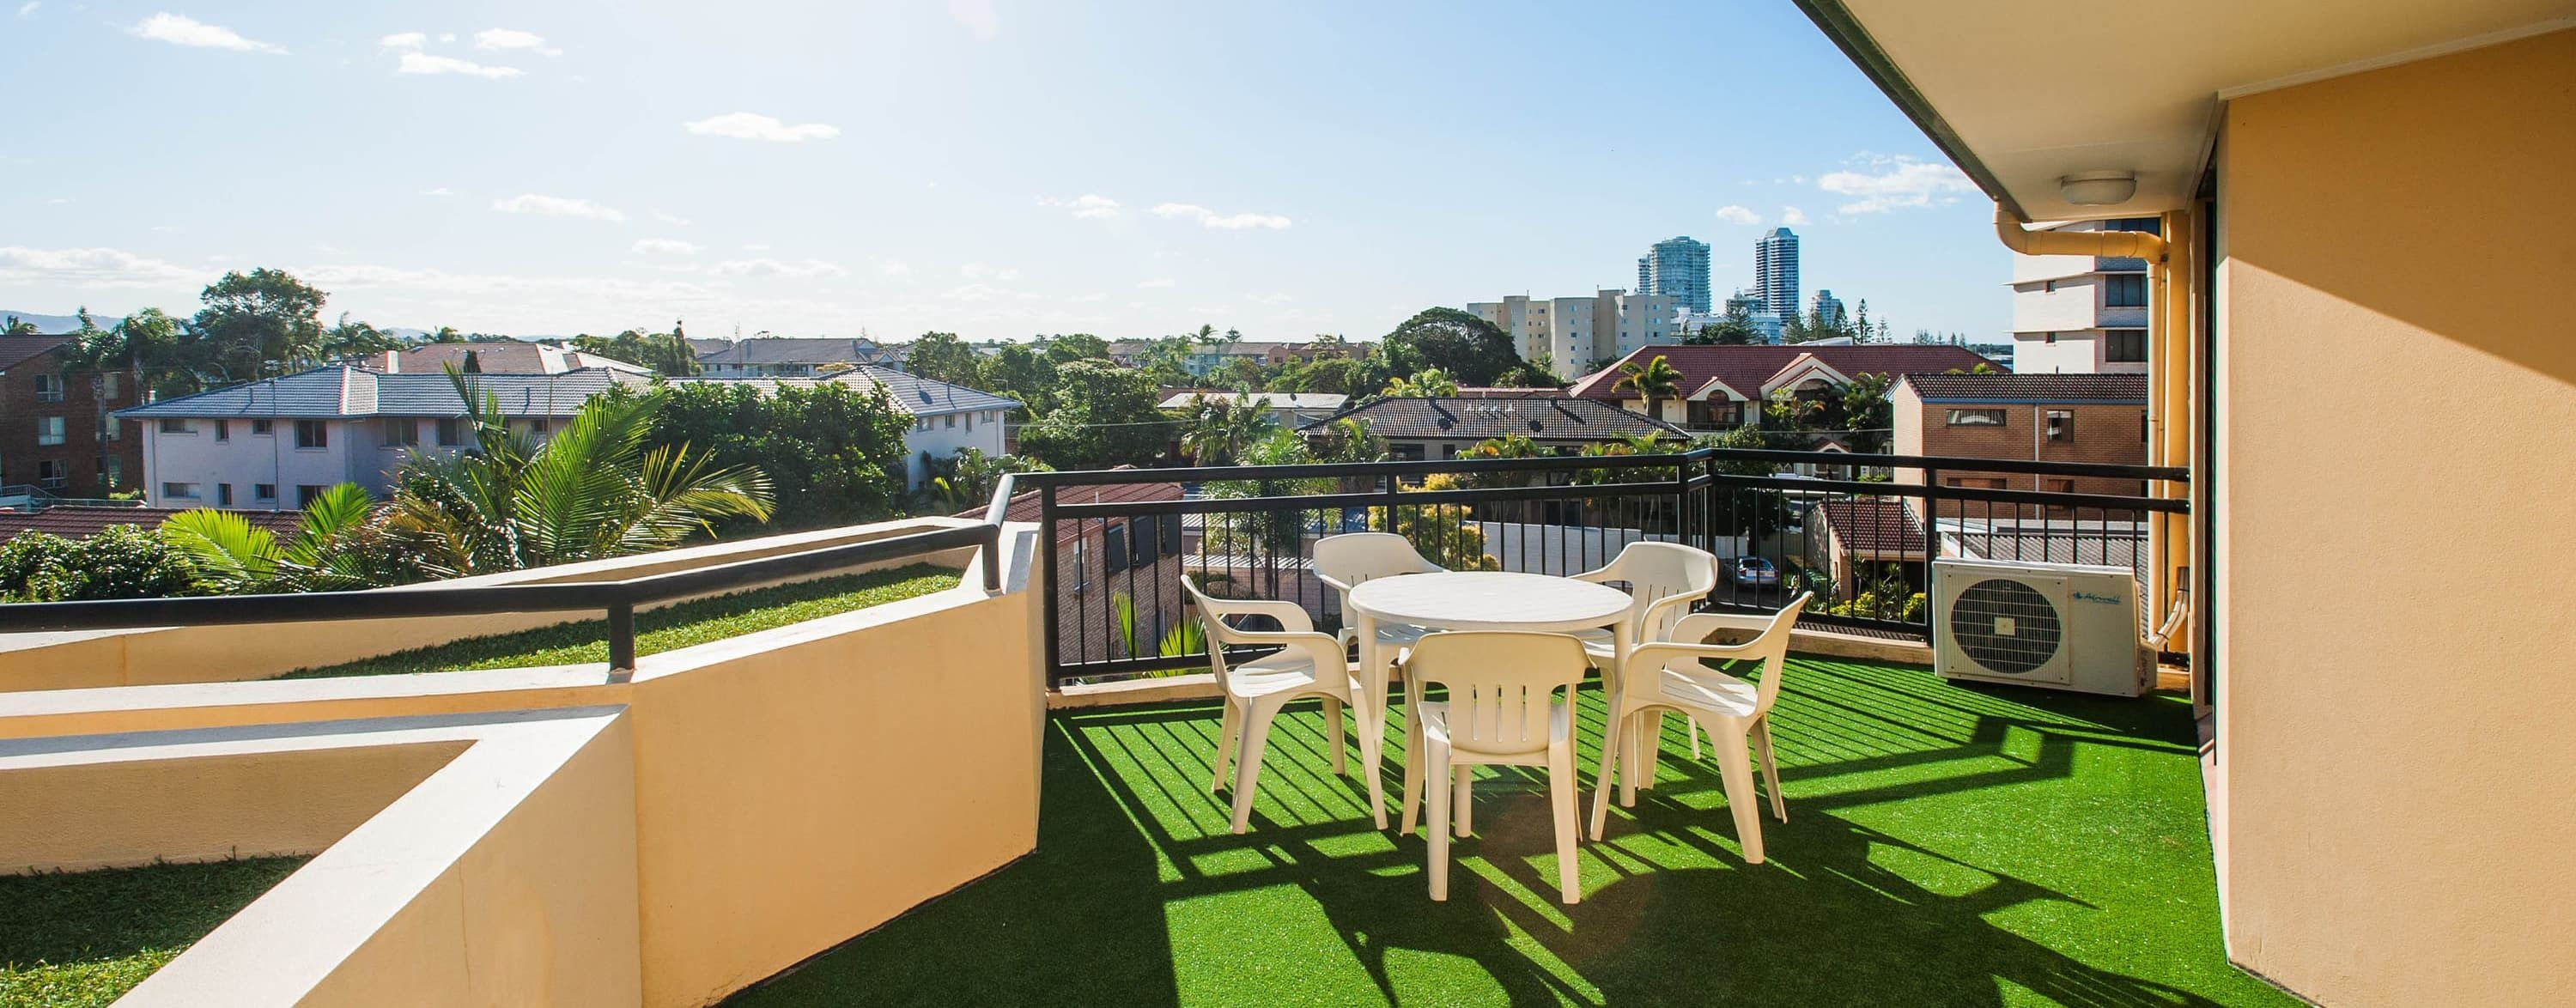 Accommodation near the Broadwater Parklands